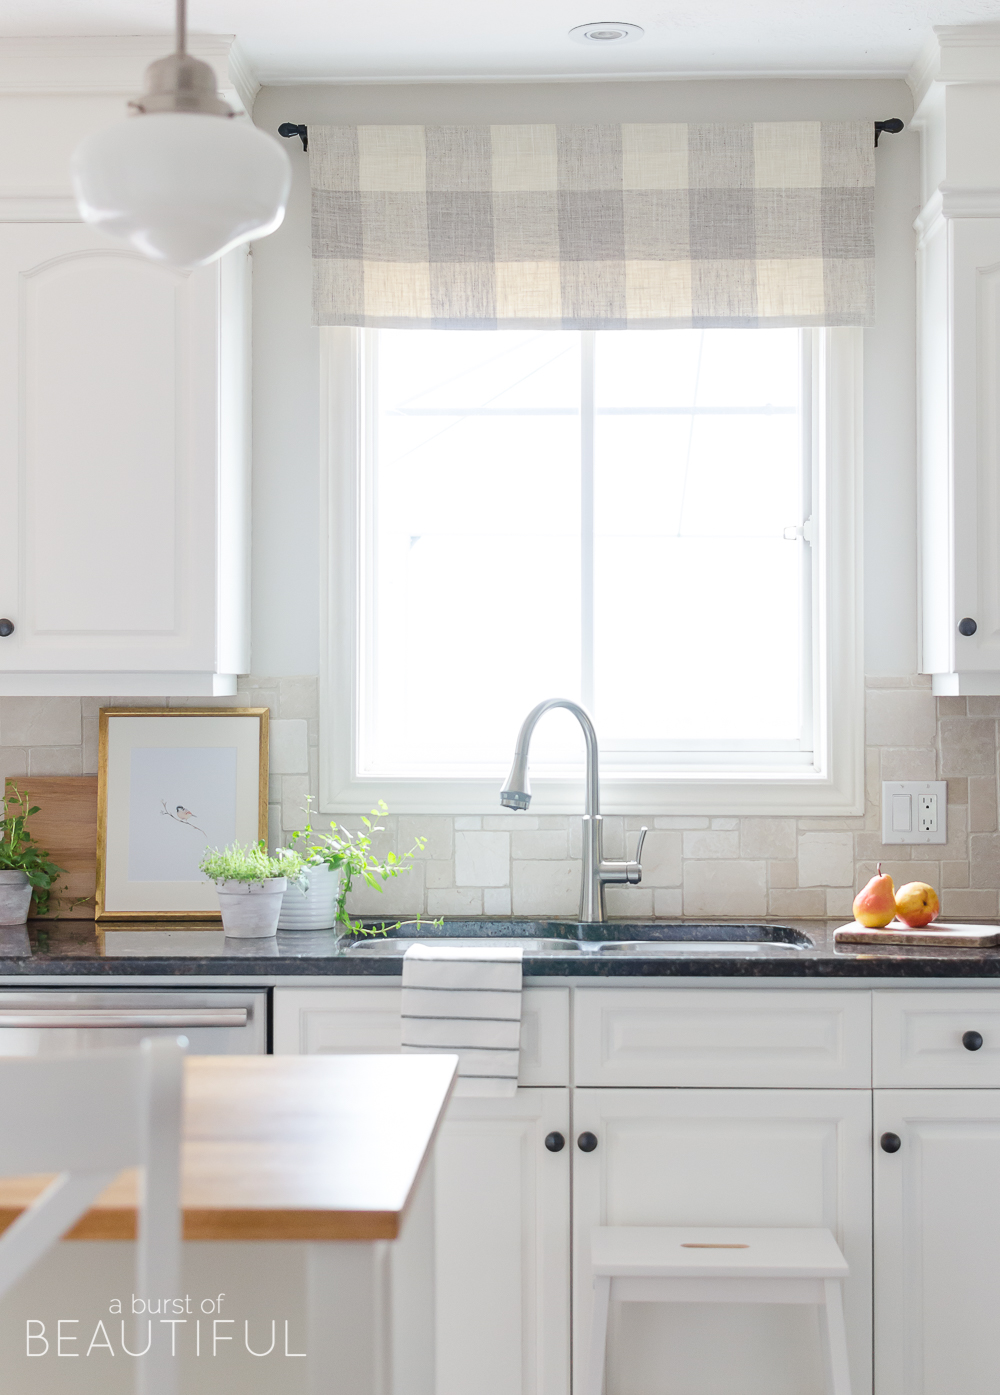 A sleek new pull-down faucet adds a touch of modern simplicity to this white modern farmhouse kitchen.